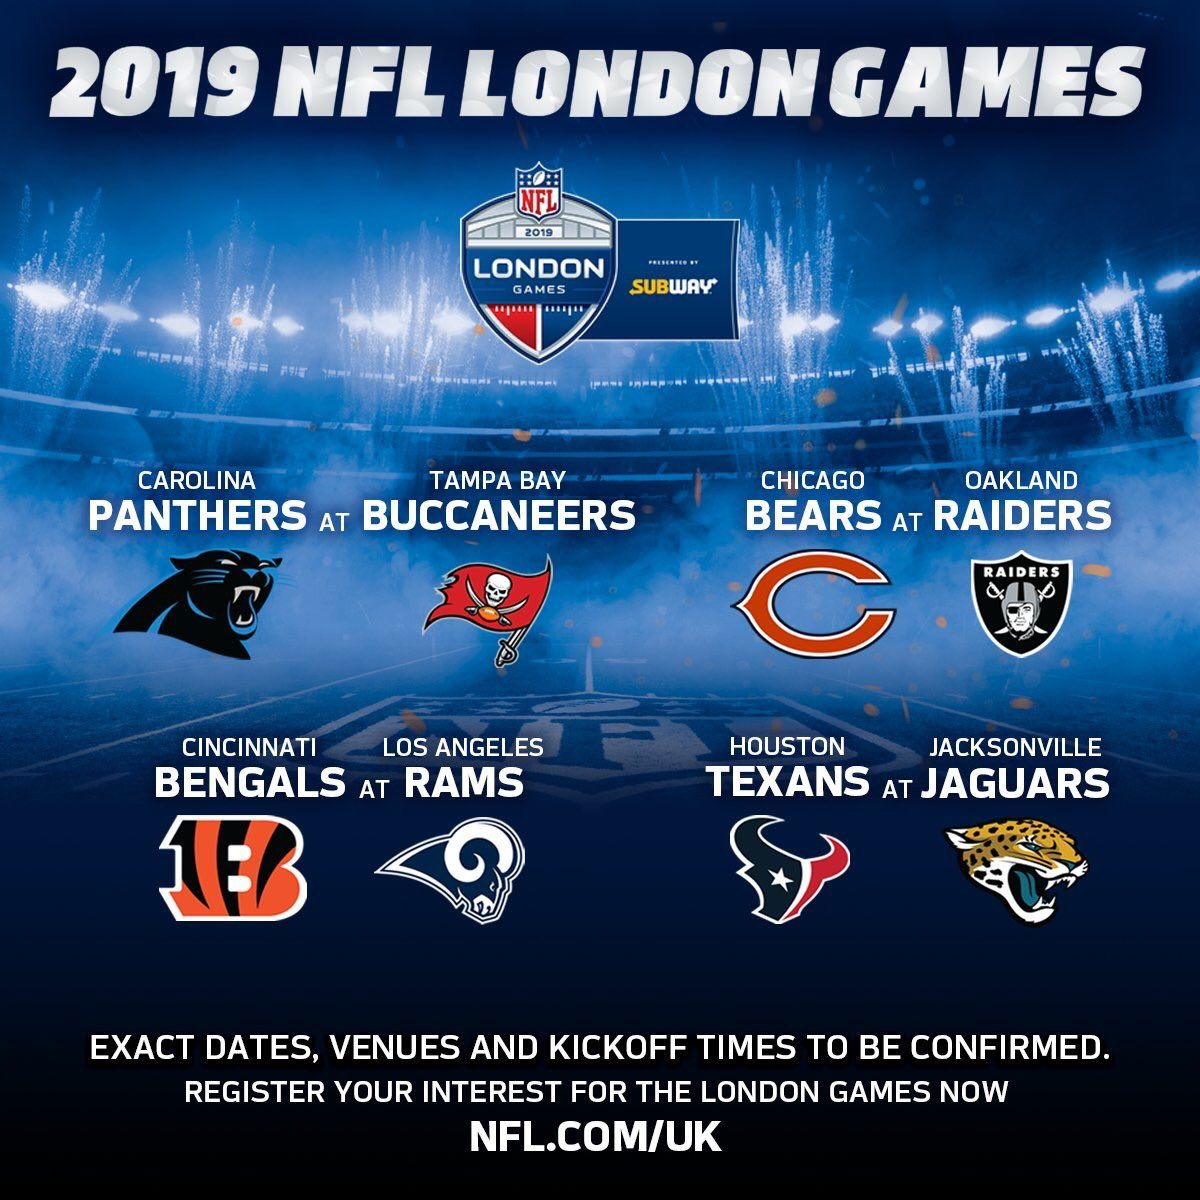 Twitter Nfl London National Football League Subway Game